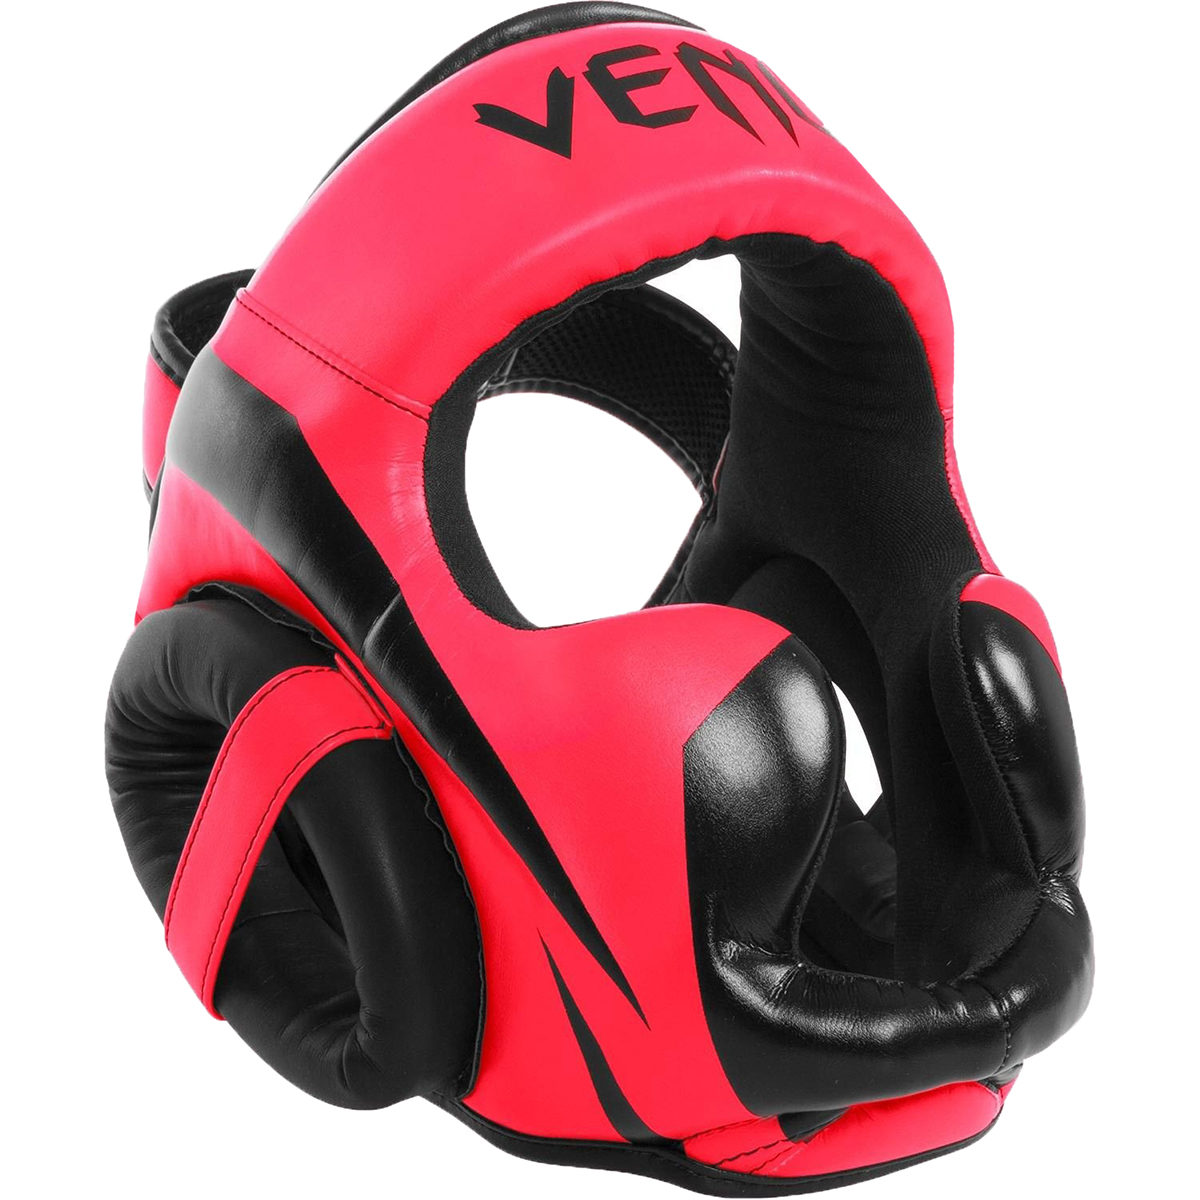 Venum-Elite-Boxing-Headgear thumbnail 35